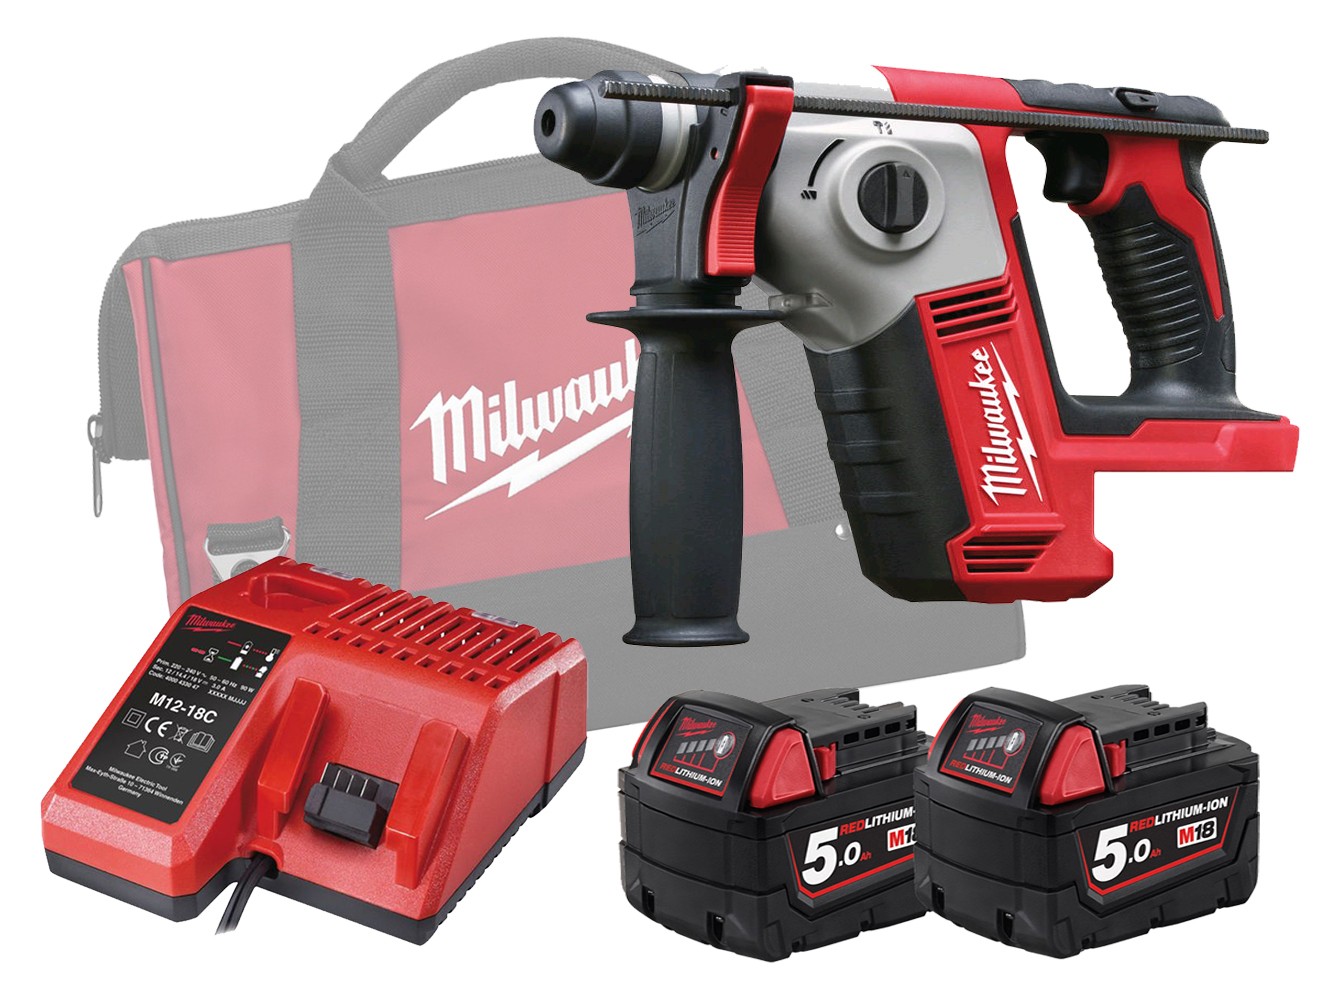 MILWAUKEE 18V COMPACT SDS+ 2 MODE ROTARY HAMMER - M18BH - 5.0AH PACK